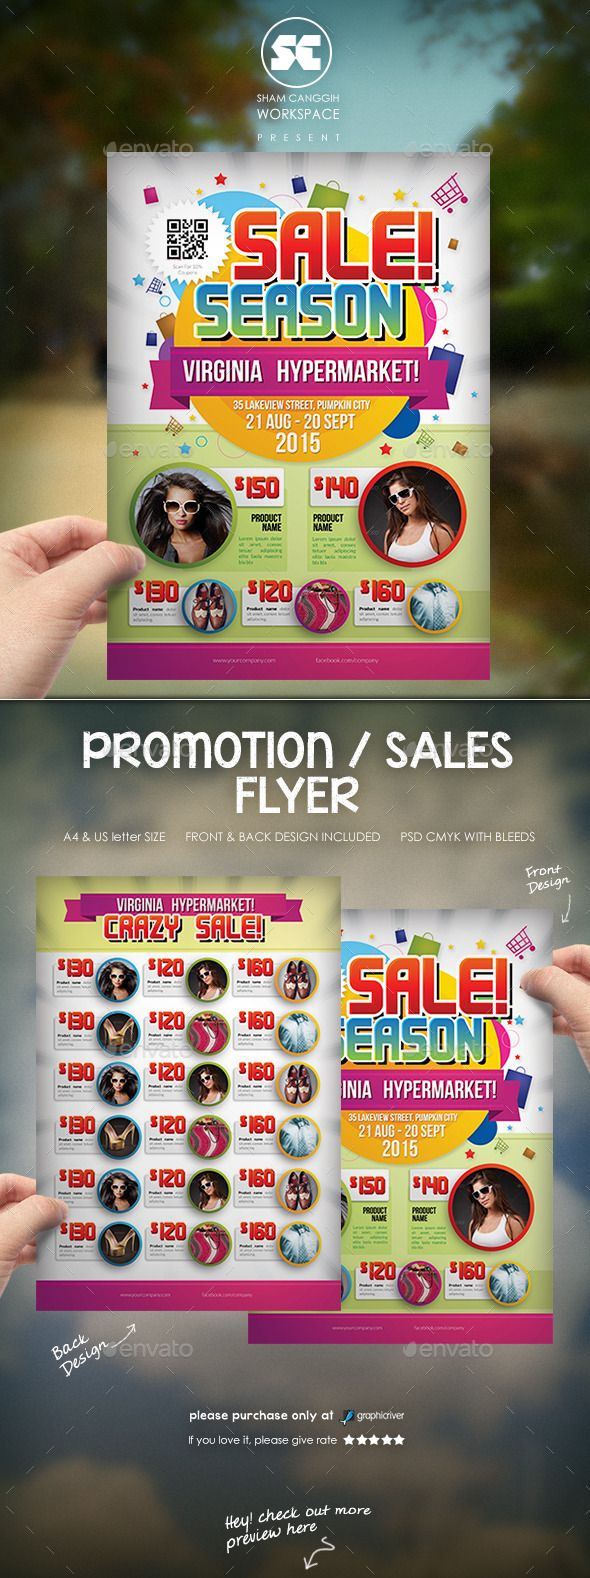 s promotion flyer flyers and promotion buy s promotion flyer by shamcanggih on graphicriver flyer templates designed exclusively for marketing s promotion discount or any of use